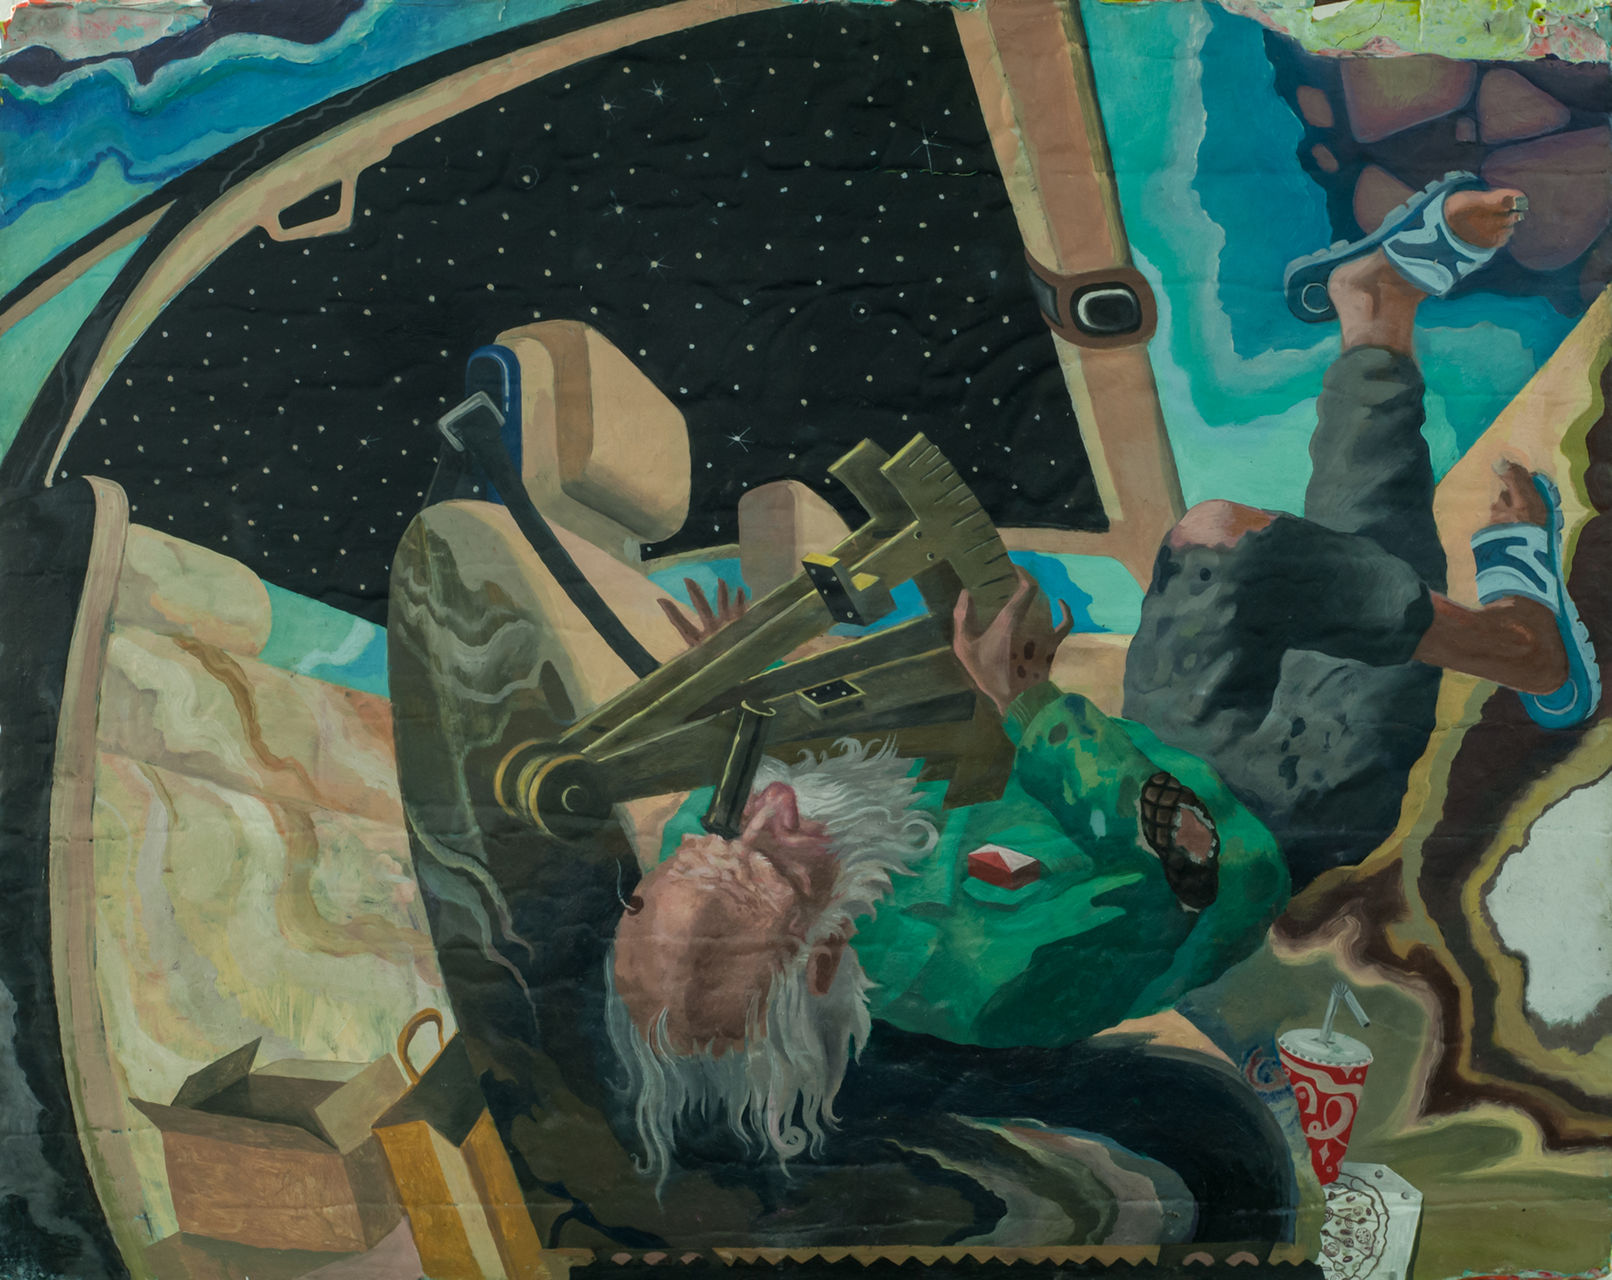 Mihut Boscu Kafchin, Diogenes reading the stars, 2015, oil on wood, 50,5 x 62,5 cm